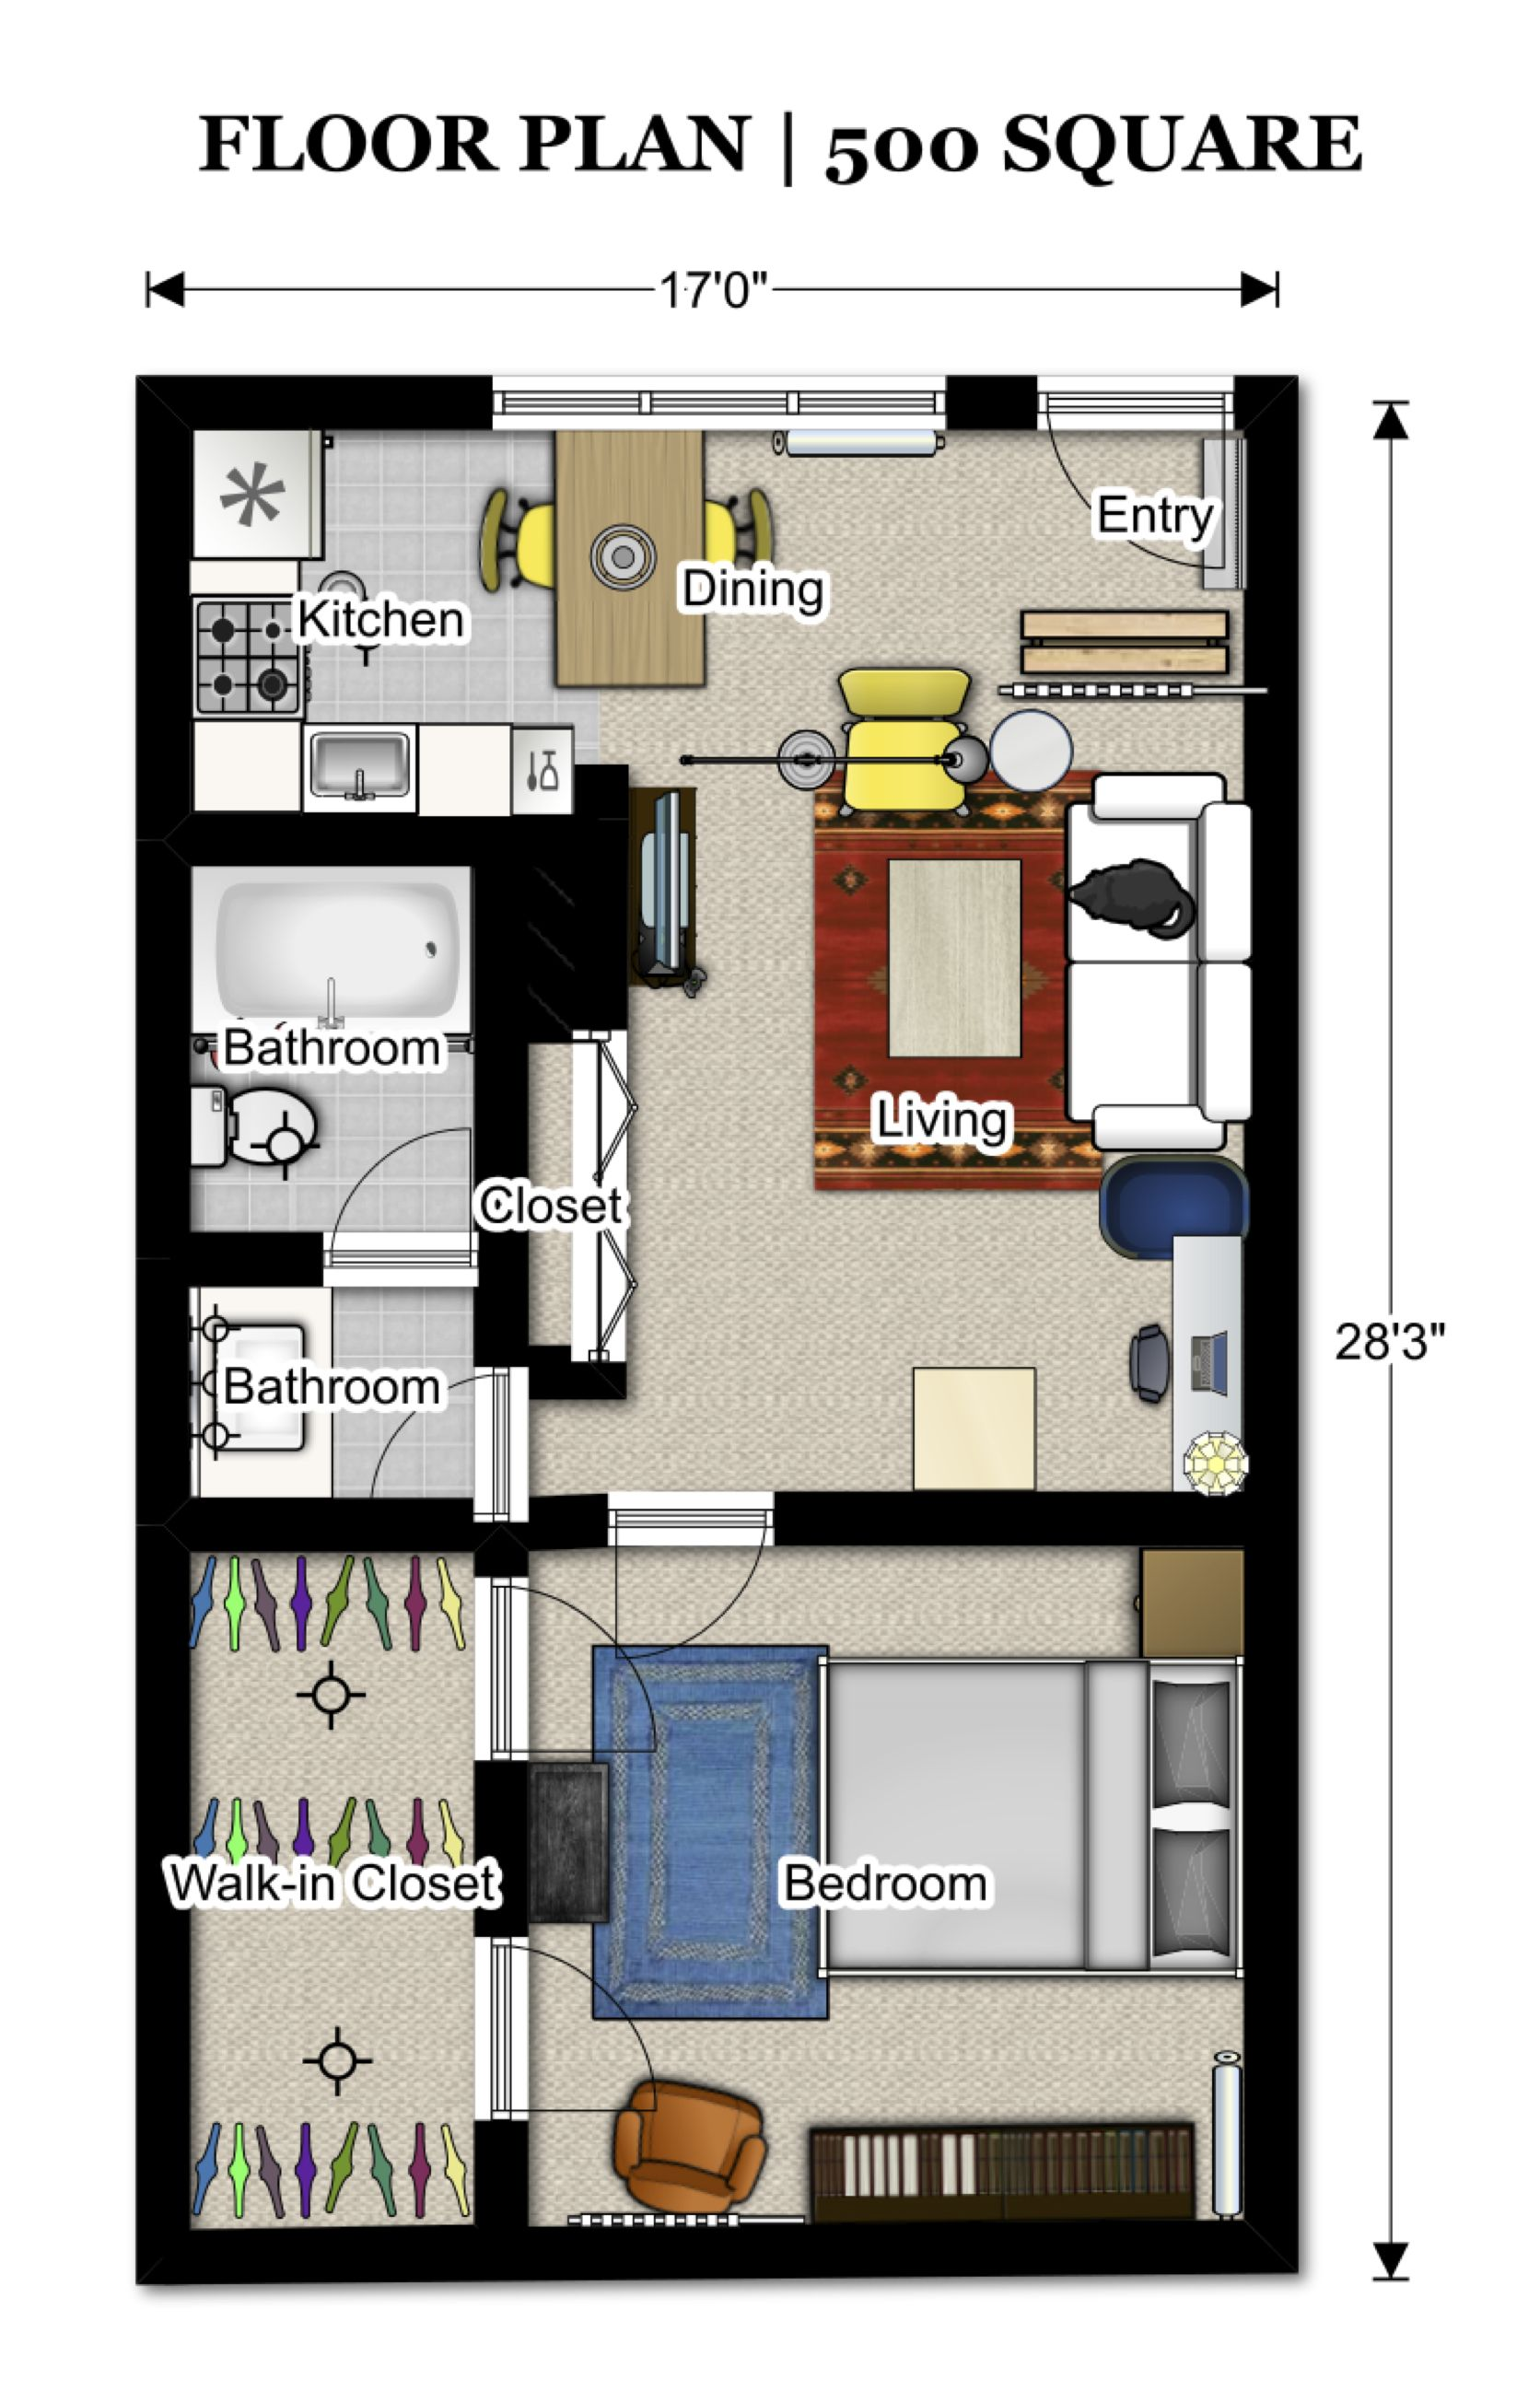 500 Square Feet Apartment Floor Plan Home Design Great Lovely Small House Floor Plans Studio Apartment Floor Plans Apartment Floor Plans